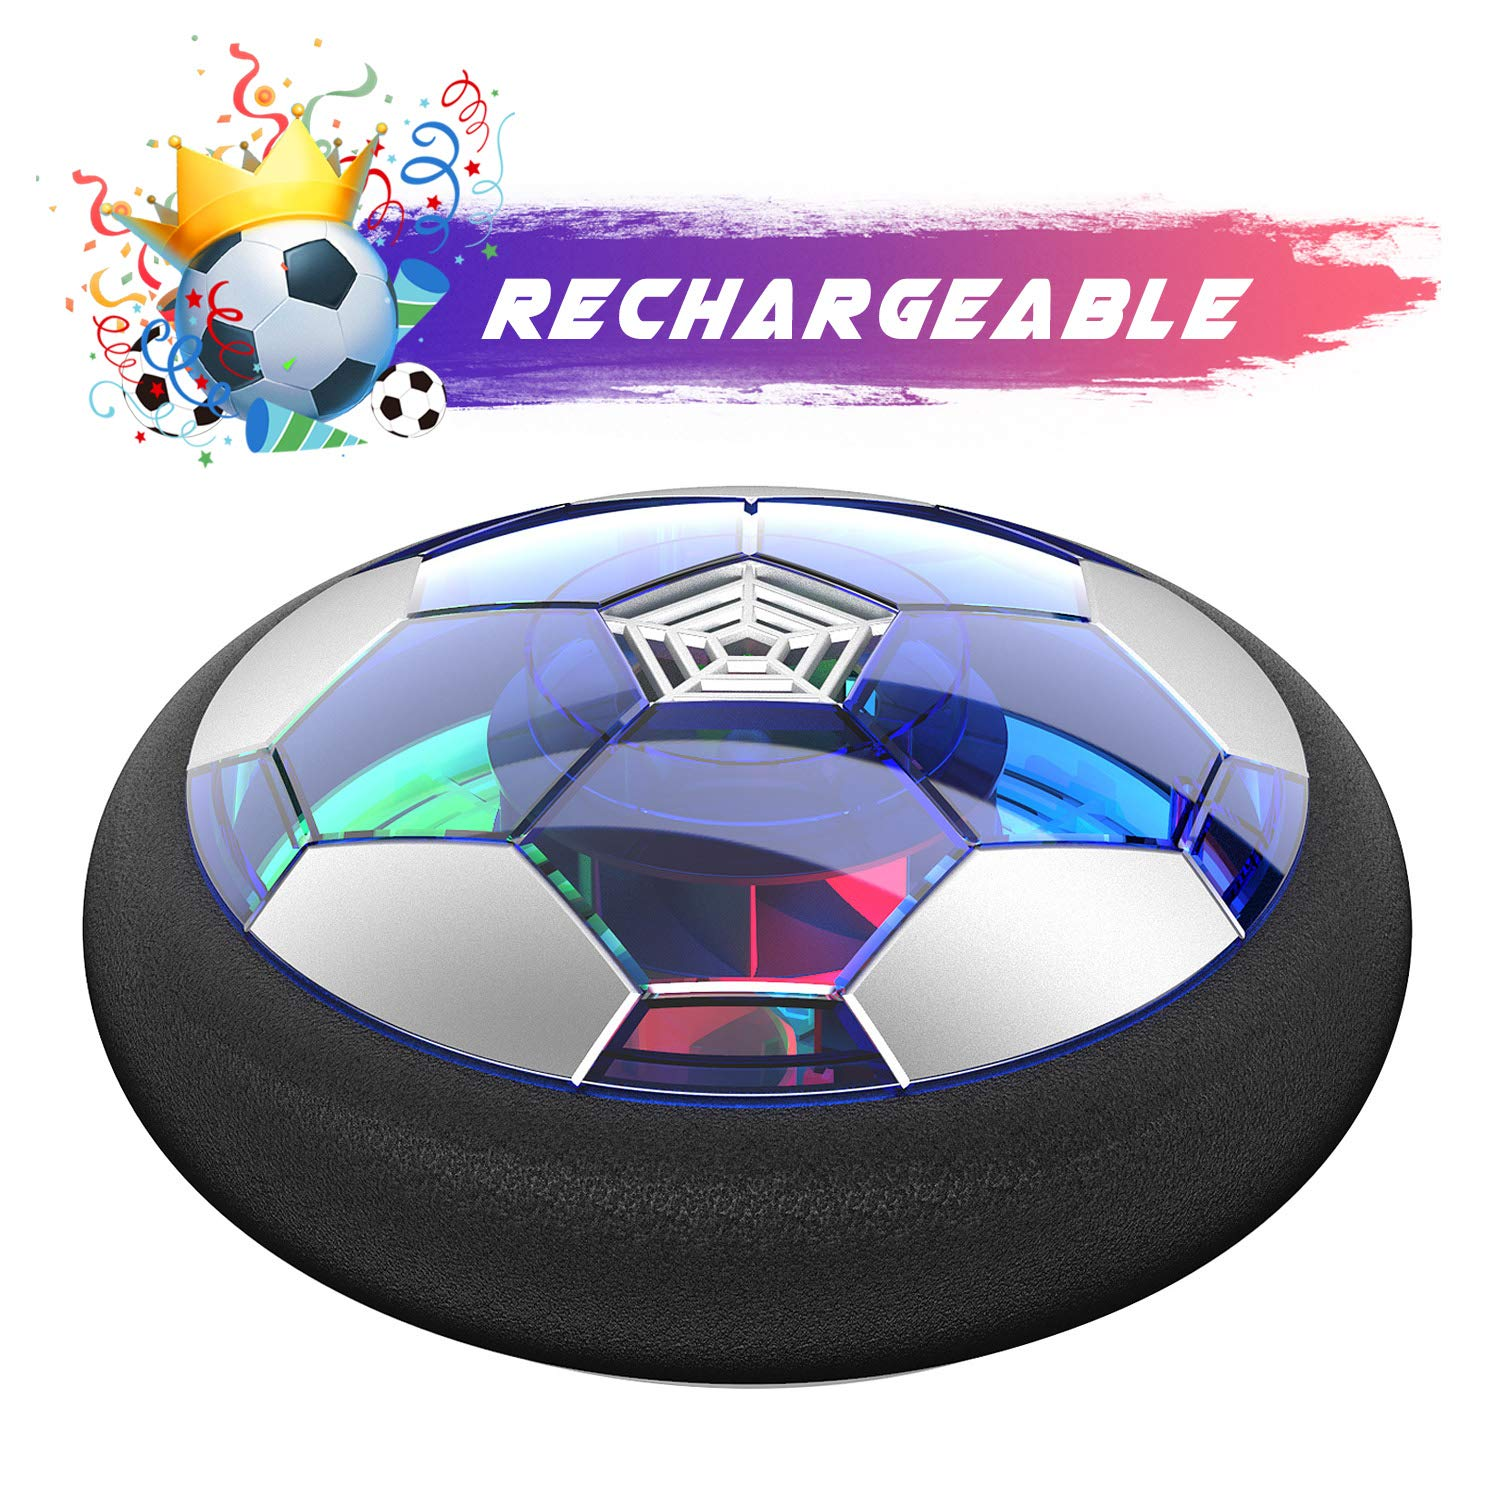 WisToyz Kids Toys Hover Soccer Ball Rechargeable Air Soccer, Soccer Ball Indoor Floating Soccer with LED Light and Foam Bumper, Perfect Time Killer for Boys, Girls, Toddler (No AA Batteries Needed) by WisToyz